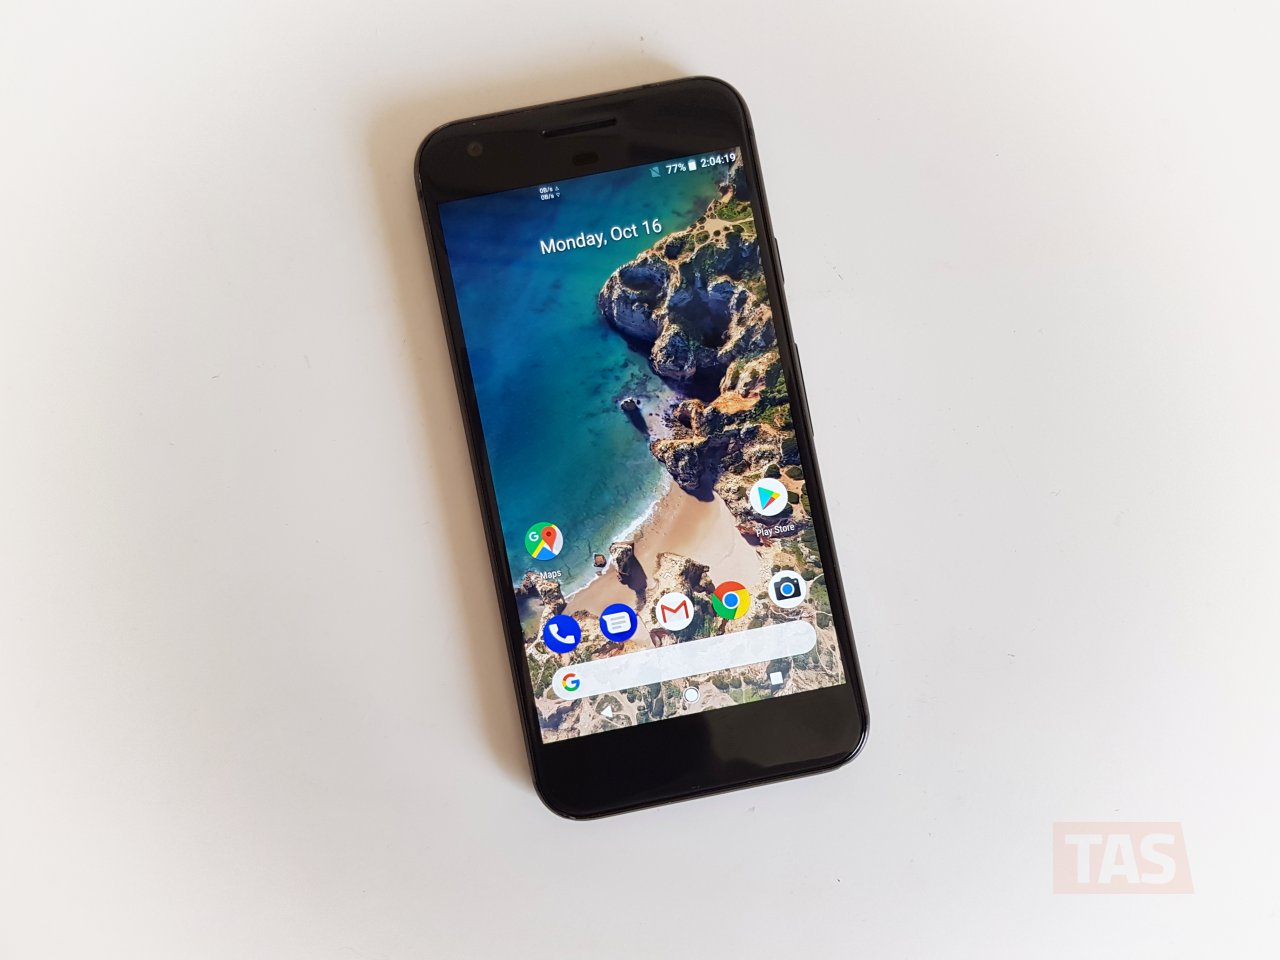 FYI: You cannot remove Google search bar at bottom on Pixel 2 Launcher